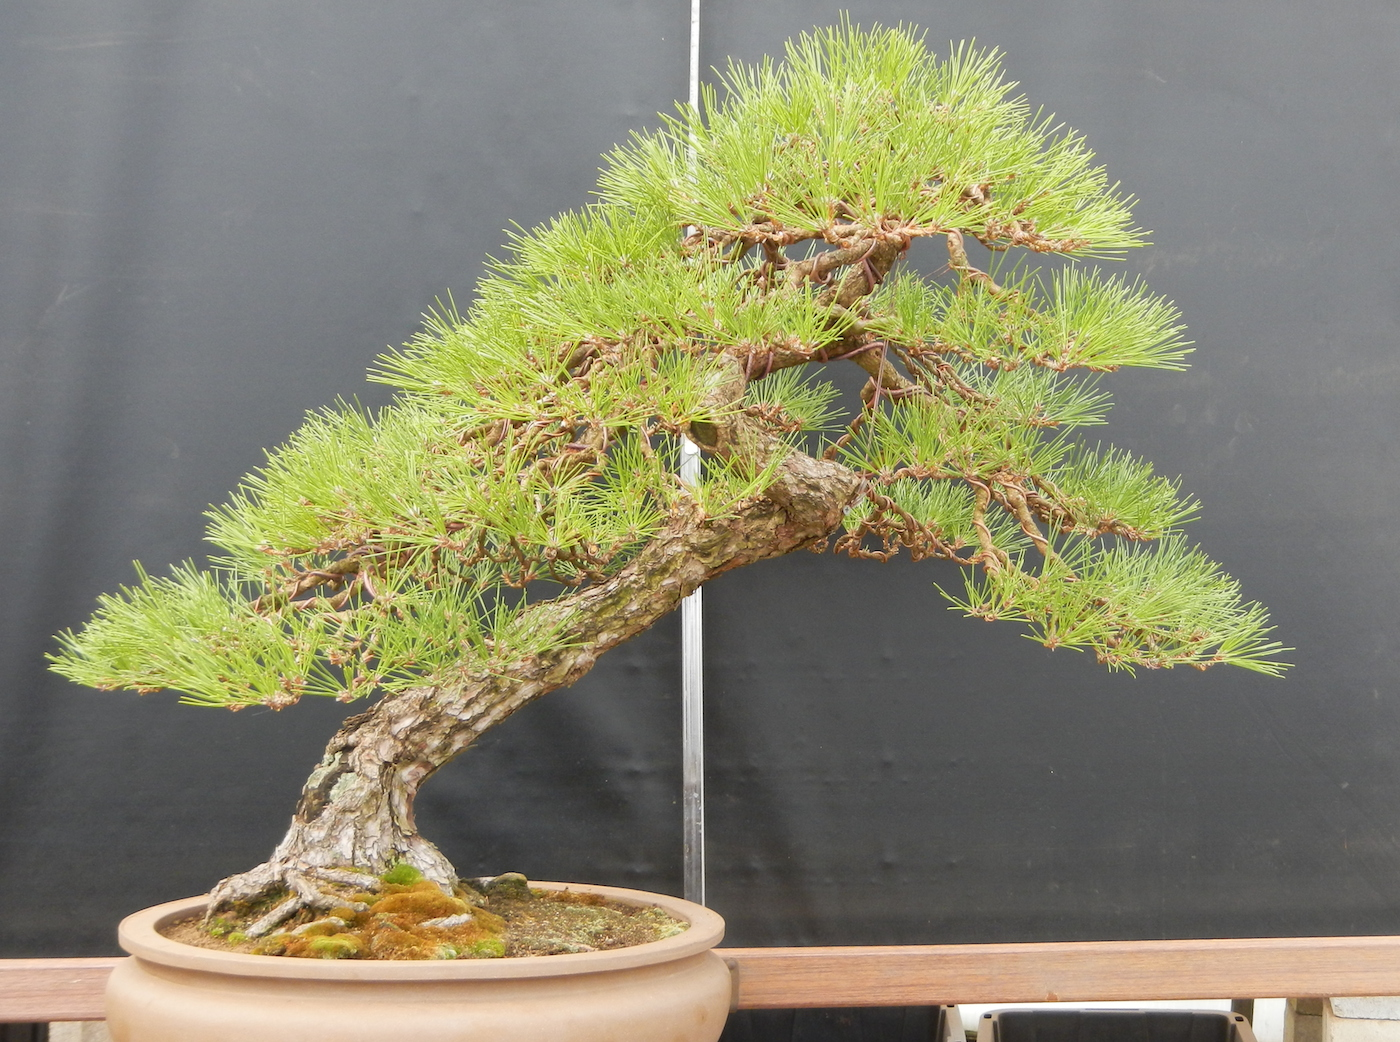 After Crazy 2015-03-20 Bonsai West Collection